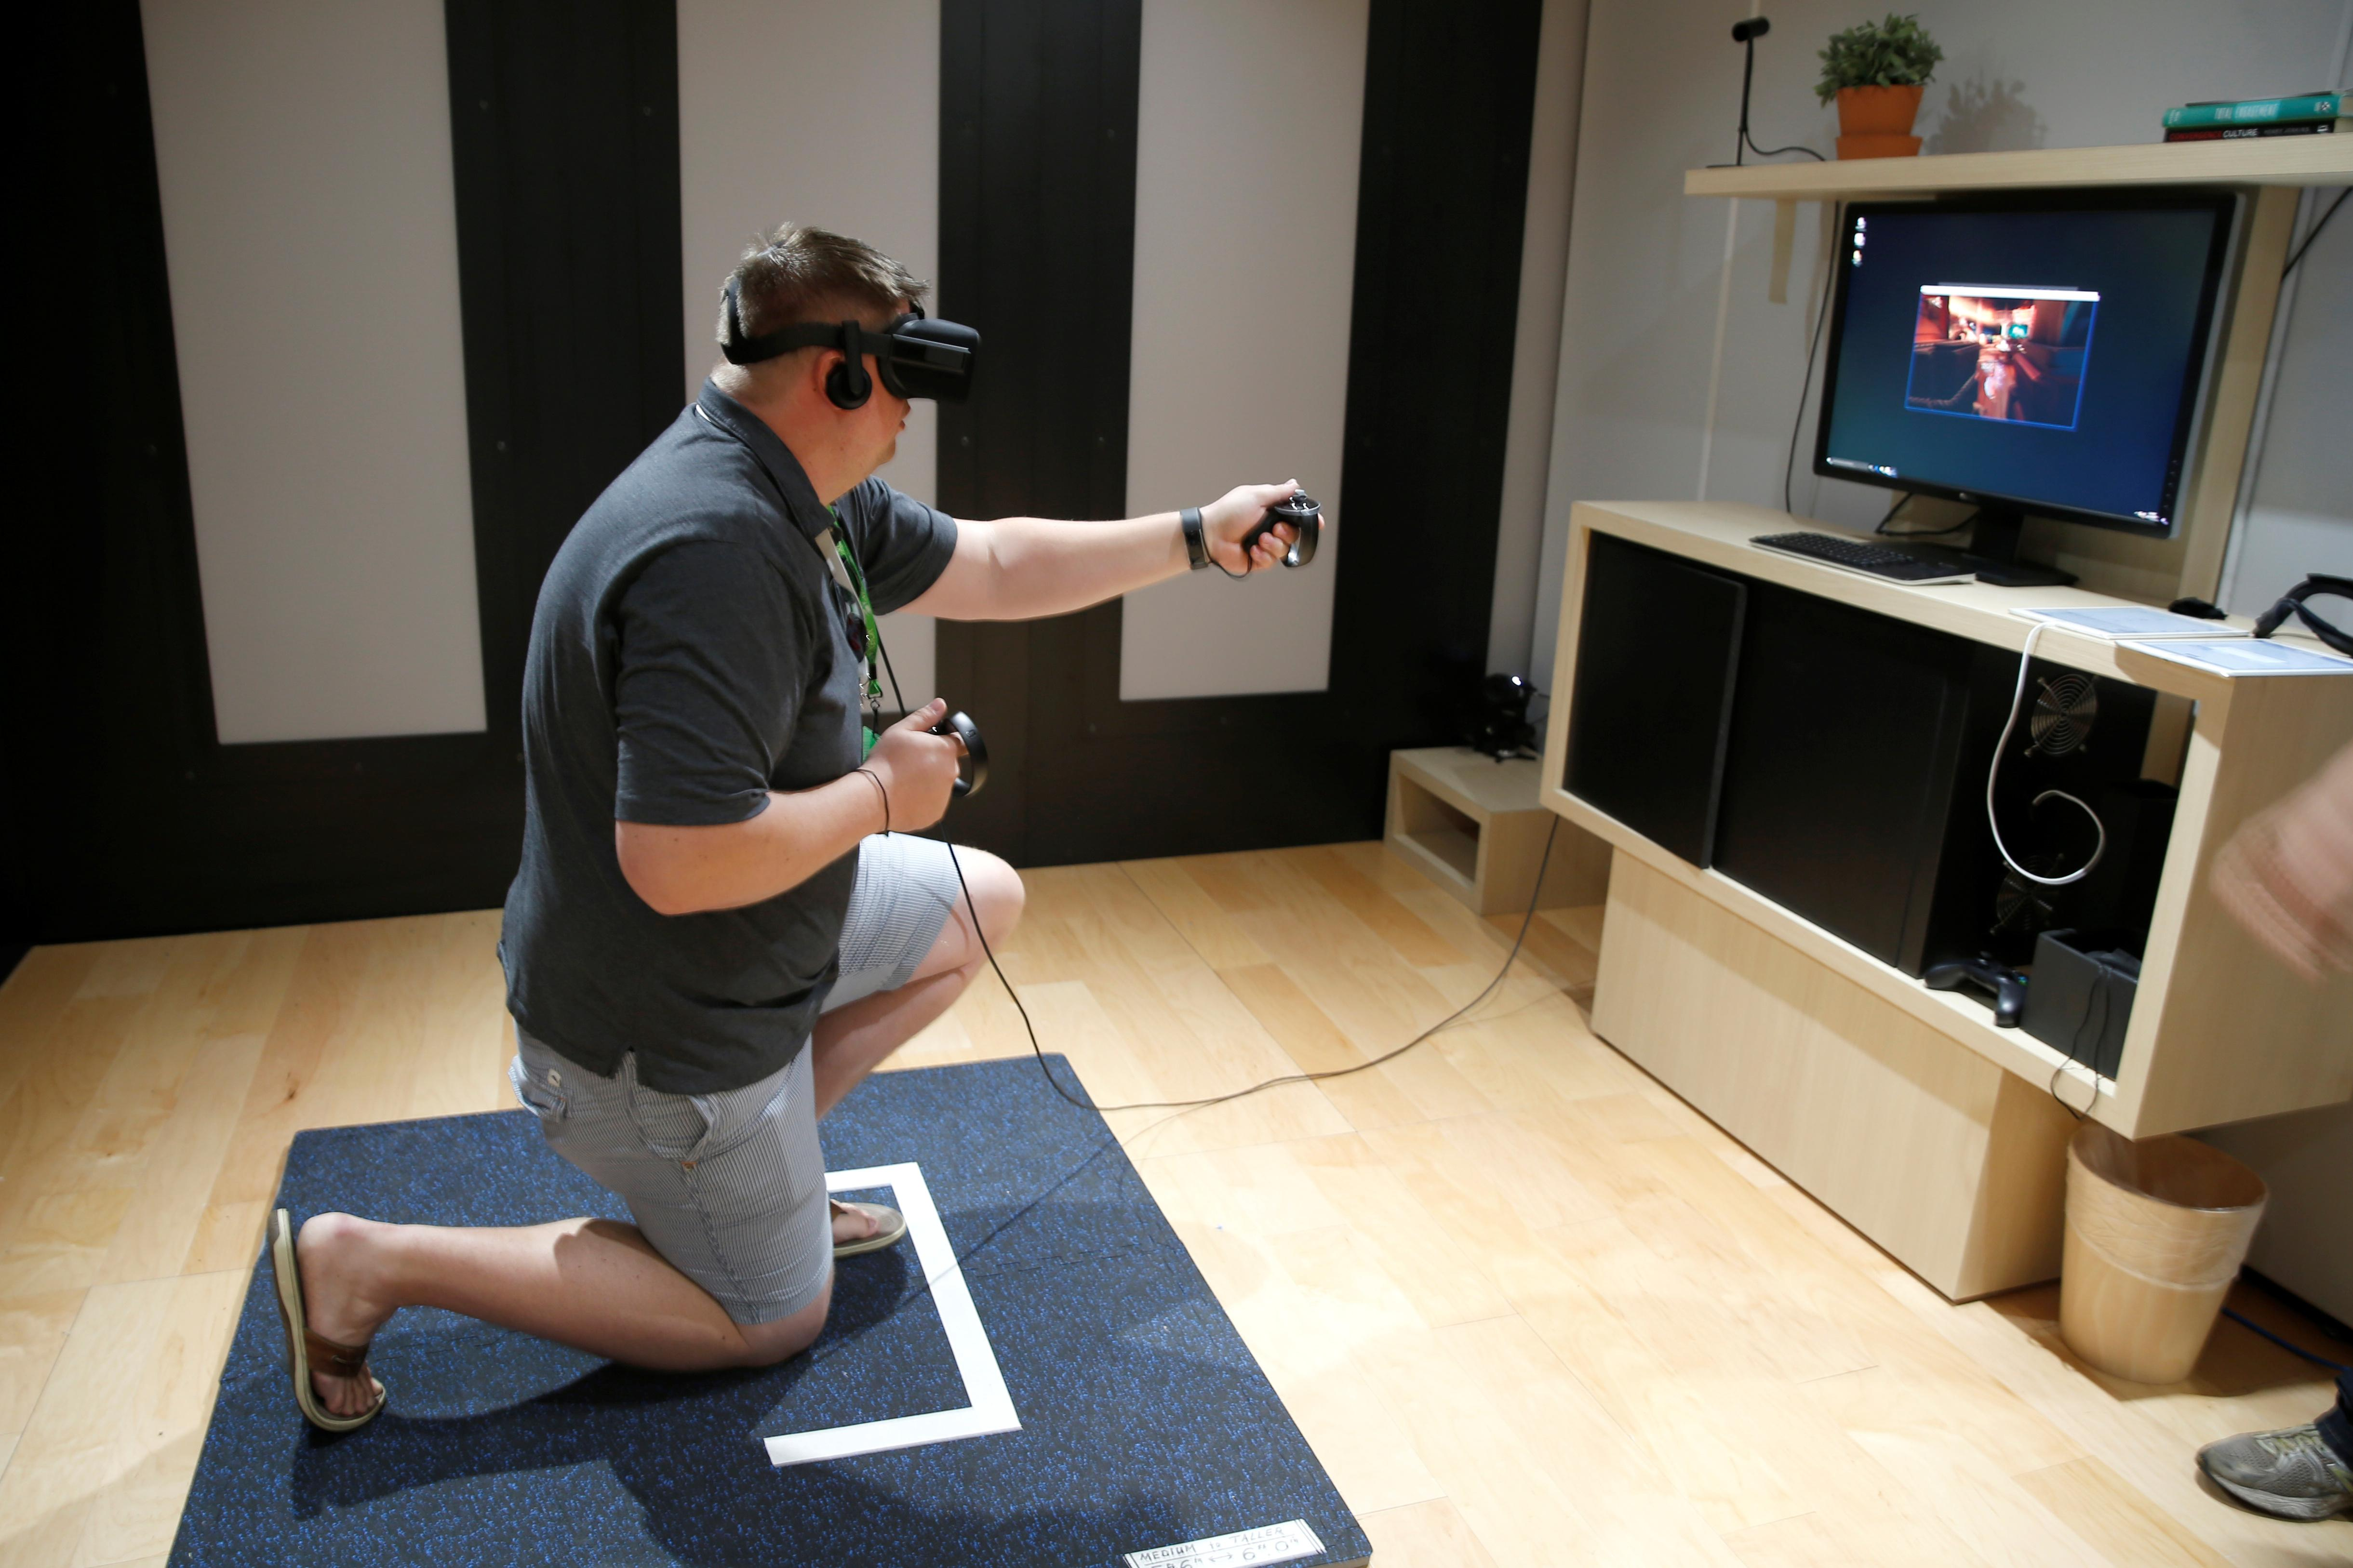 dd534a41c214 A man plays a video game with the Oculus Rift VR headset at the E3  Electronic Expo in Los Angeles